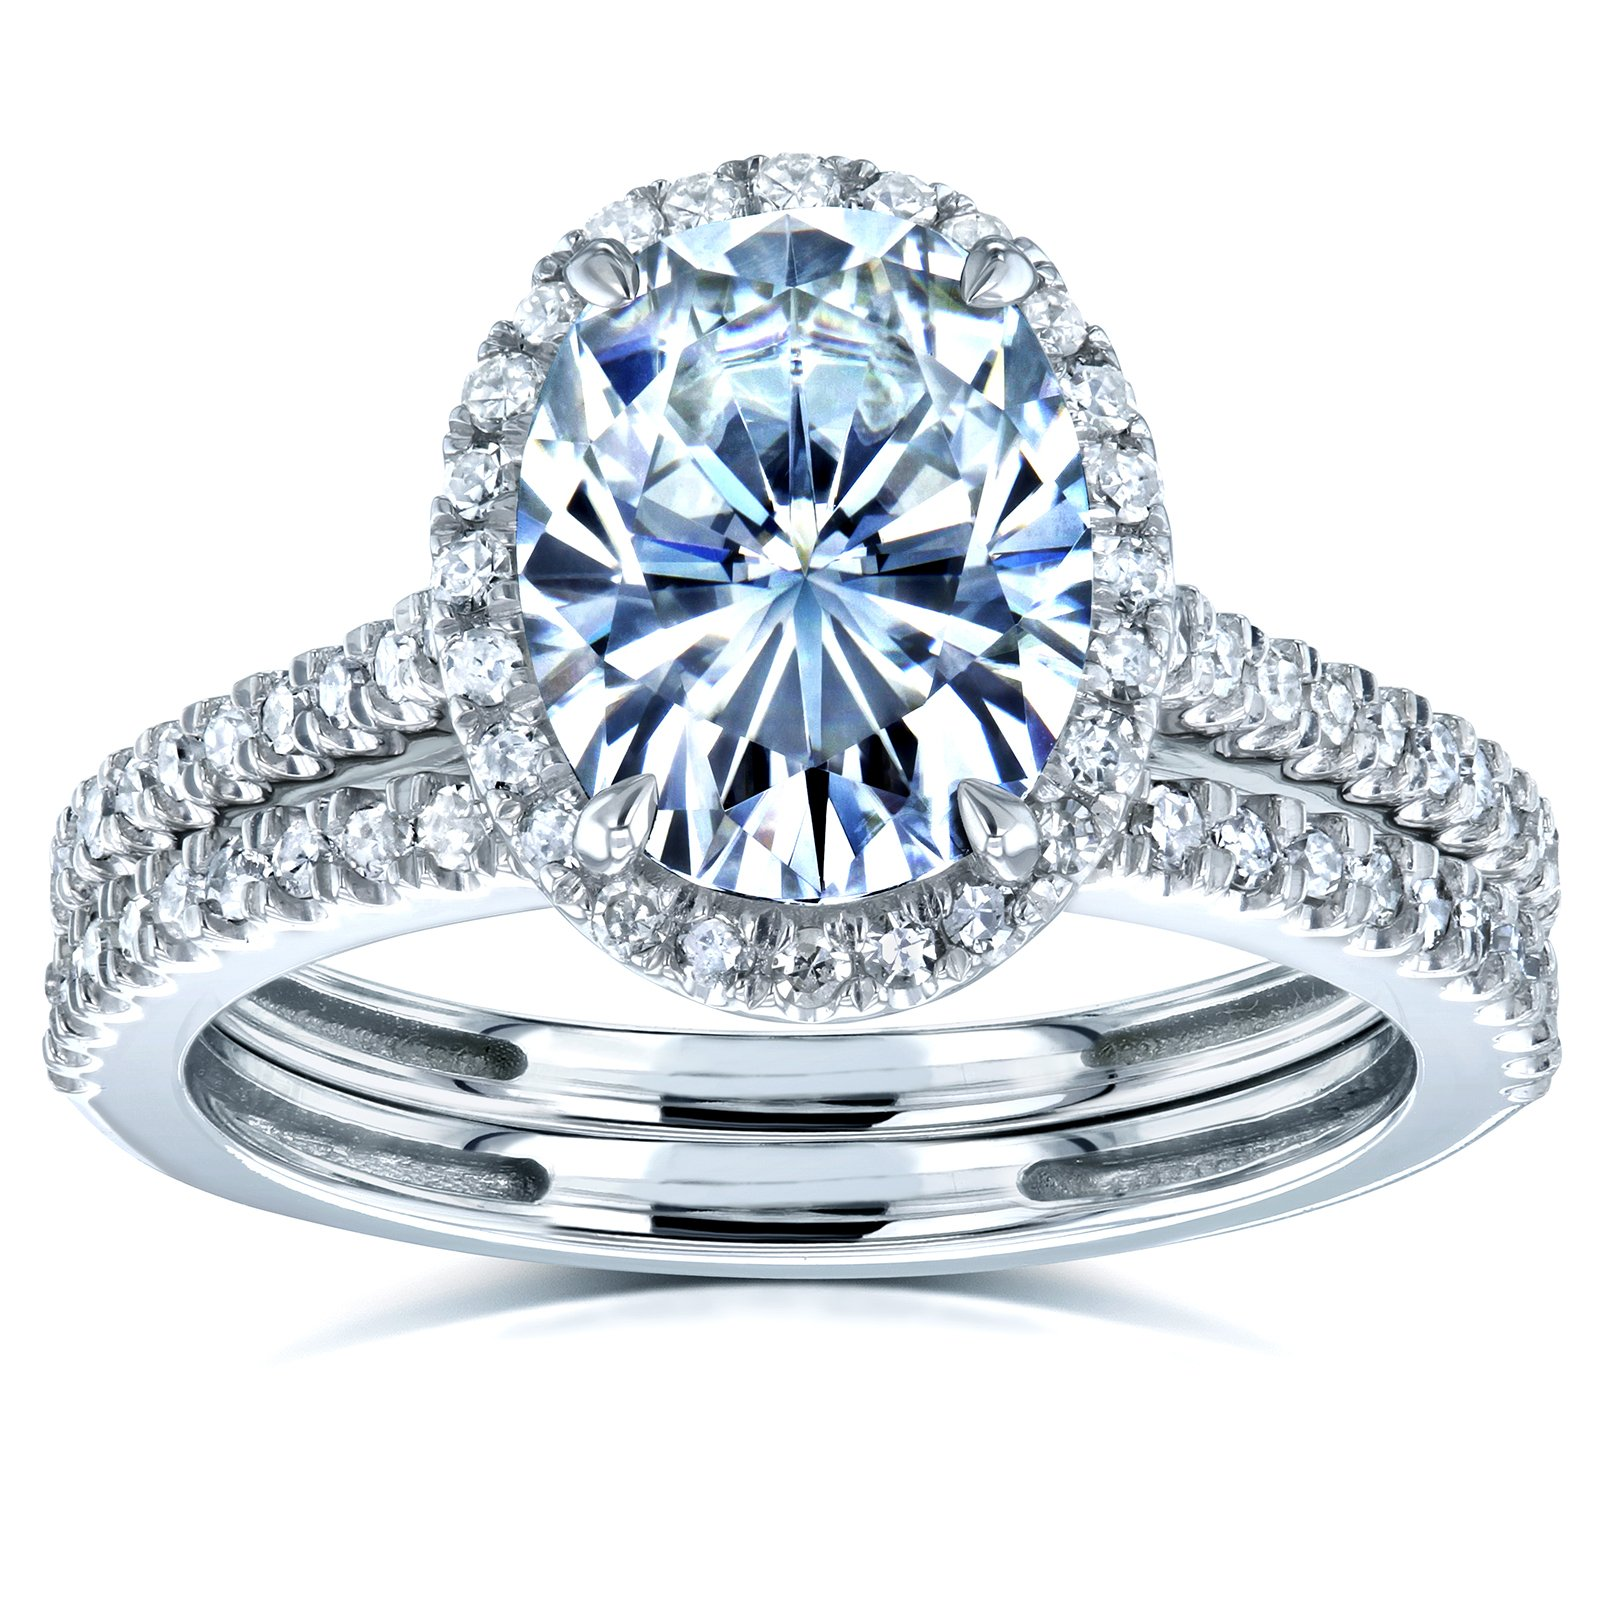 Oval Forever One Moissanite and Diamond Halo Bridal Rings Set 2 3/8 CTW 14k White Gold (DEF/VS, GH/I), 7.5